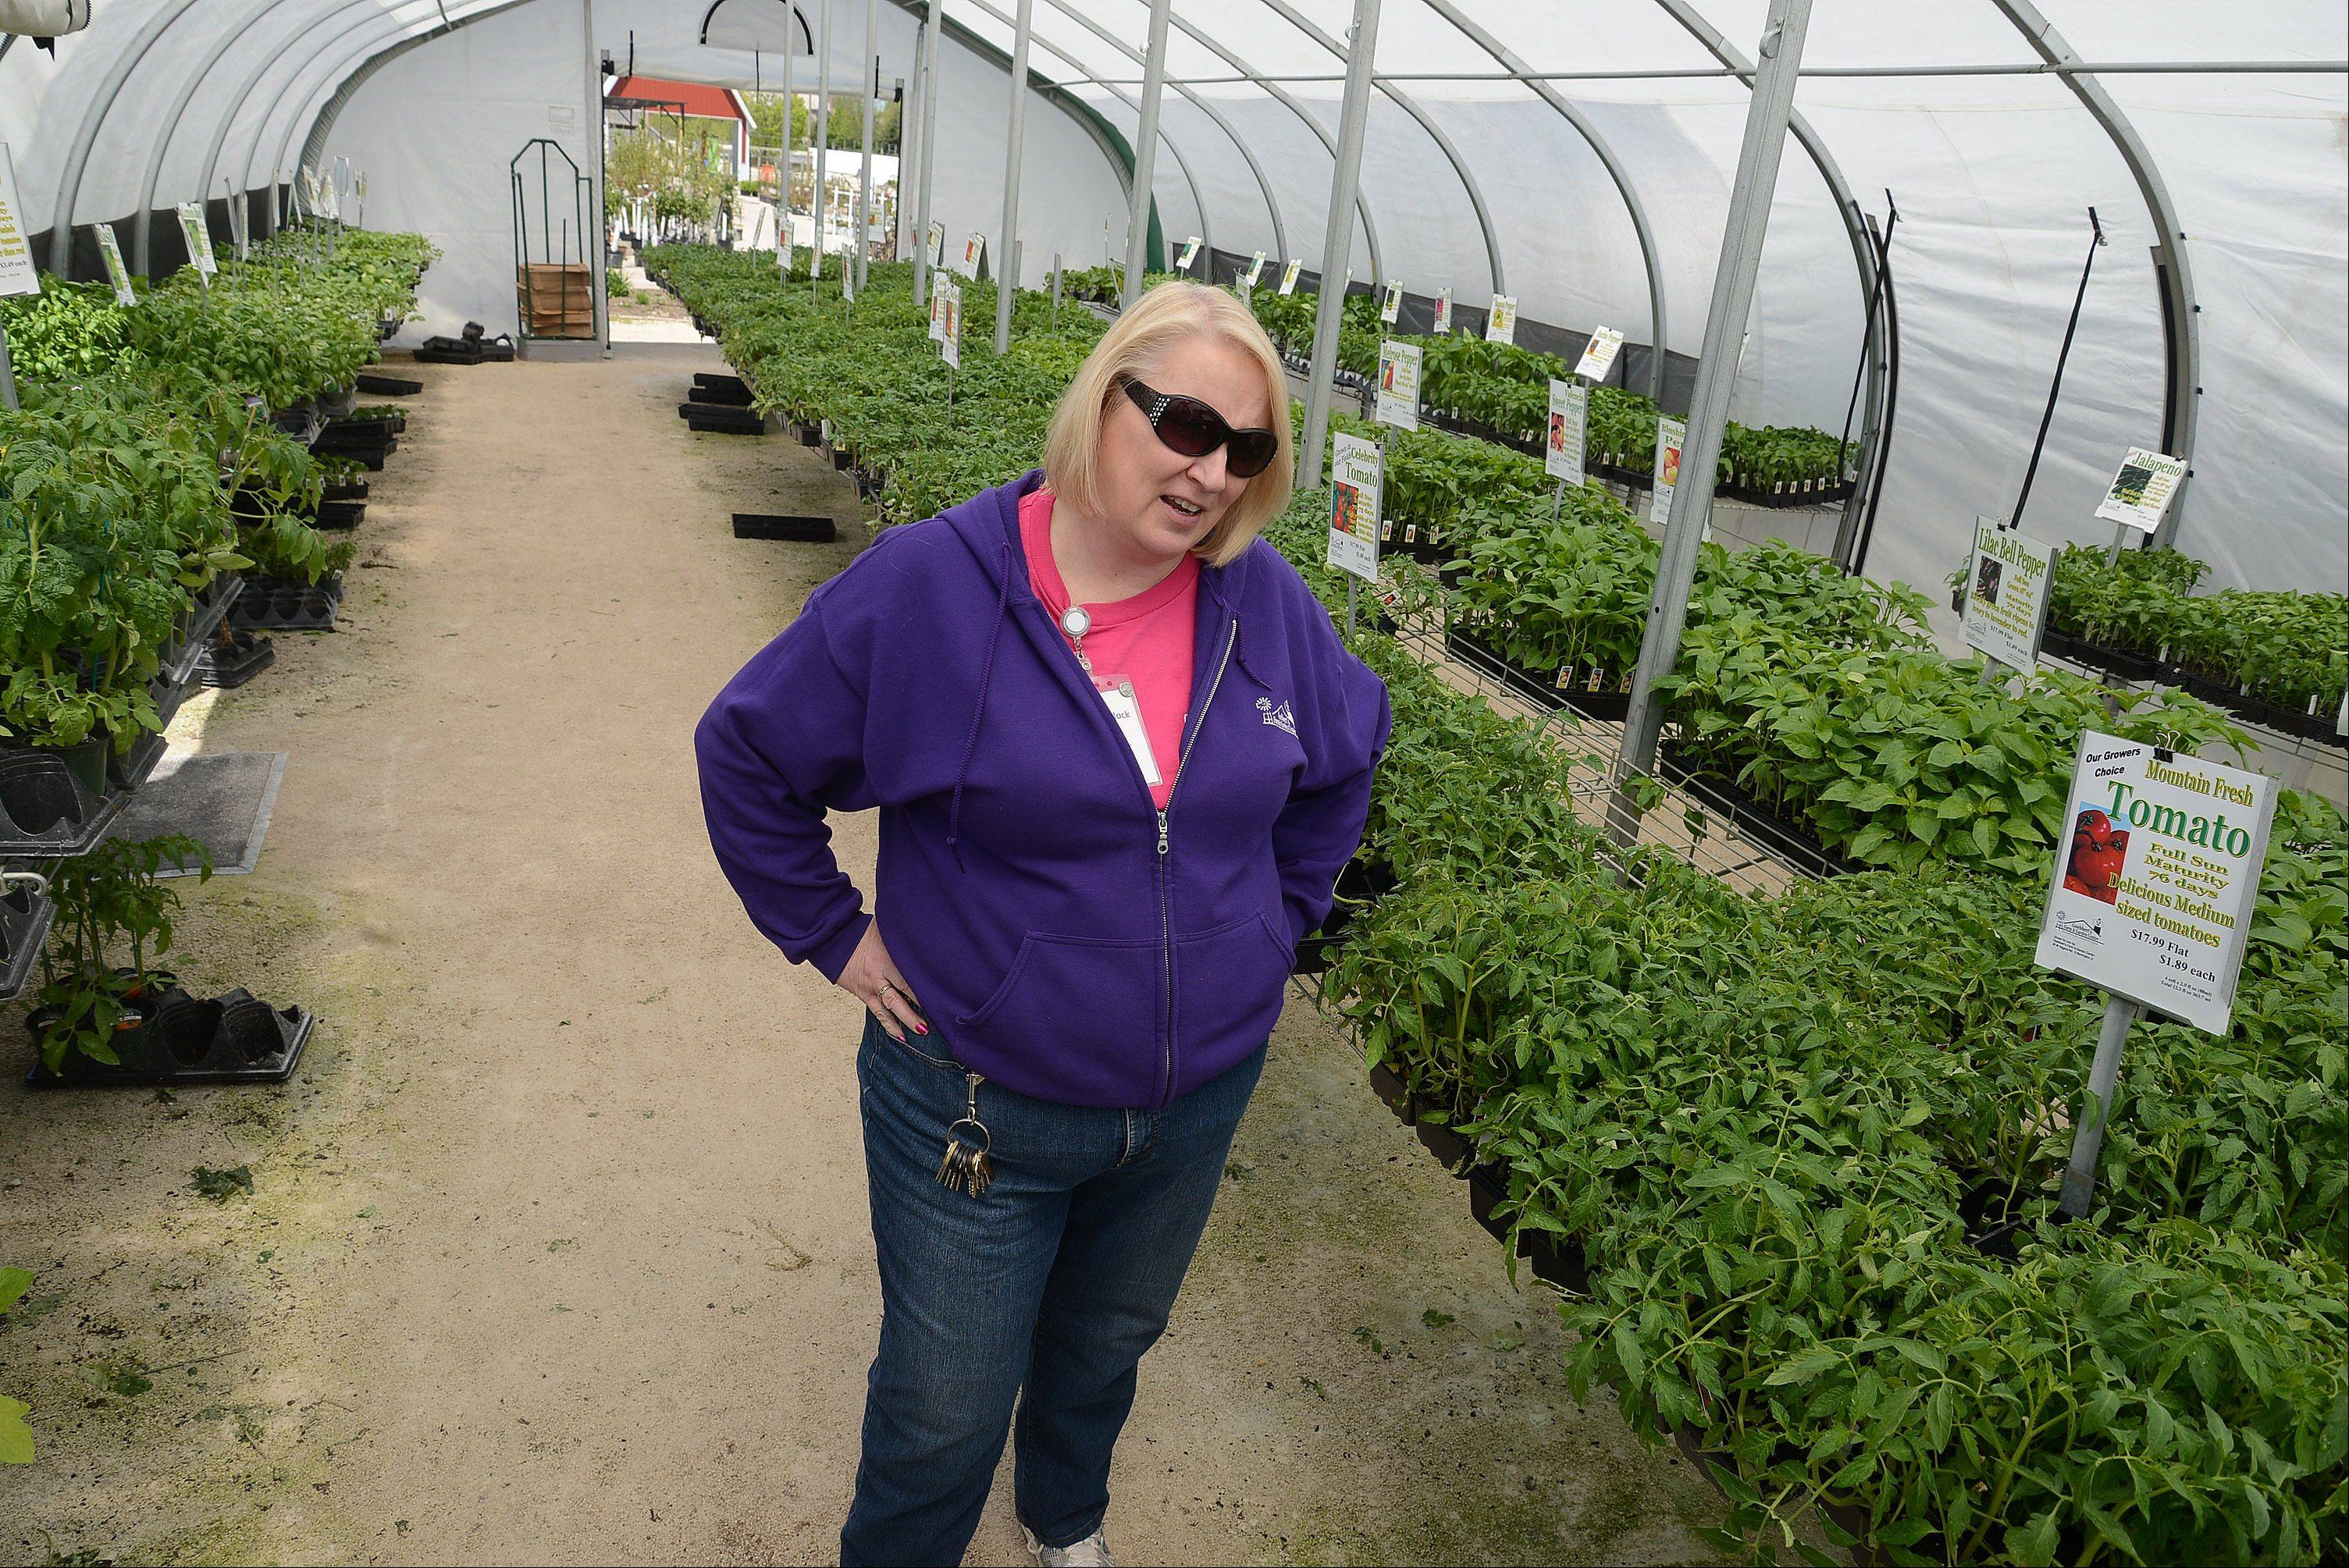 These sensitive tomato and pepper plants at Goebbert's Farm & Garden Center in South Barrington needed to be protected from Monday morning's frost, says manager Sue Murdock. Goebbert's staff brought plants inside or covered them with burlap bags as protection against the cold, but will open the greenhouse windows today as temperatures are expected to rocket into the 80s.